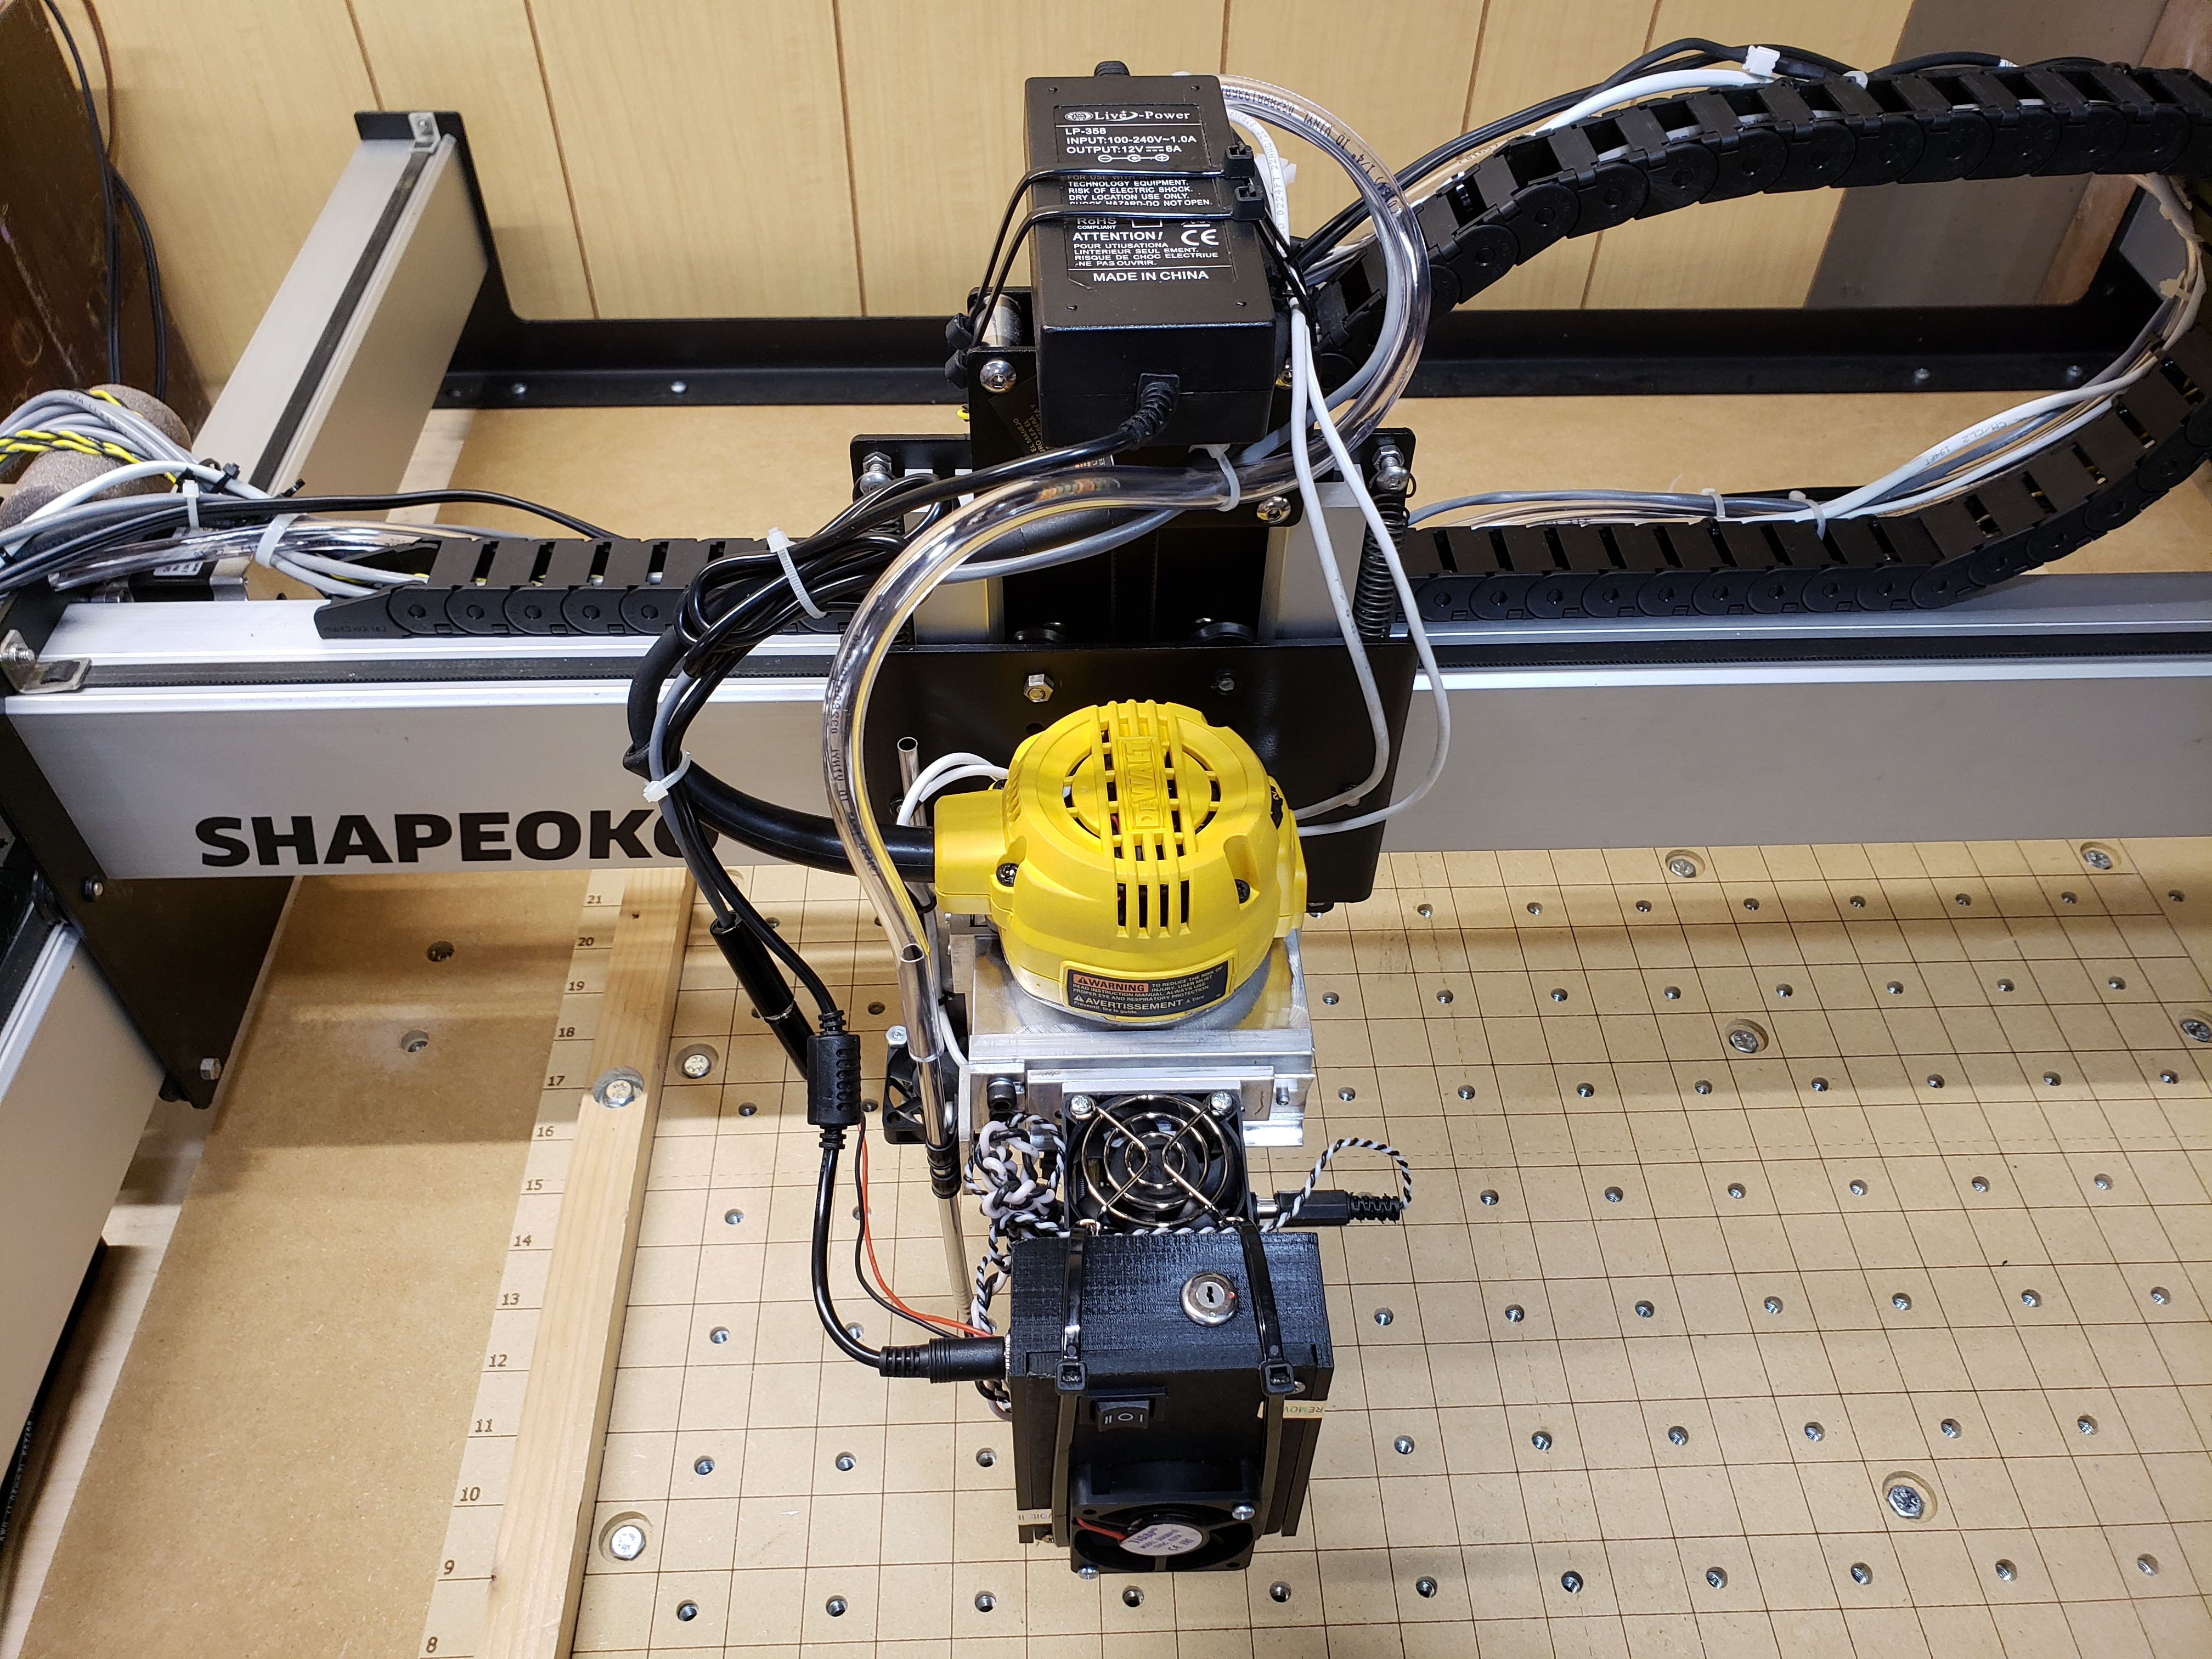 Getting started with an Endurance 10 watt laser and Shapeoko XXL 3 CNC machine